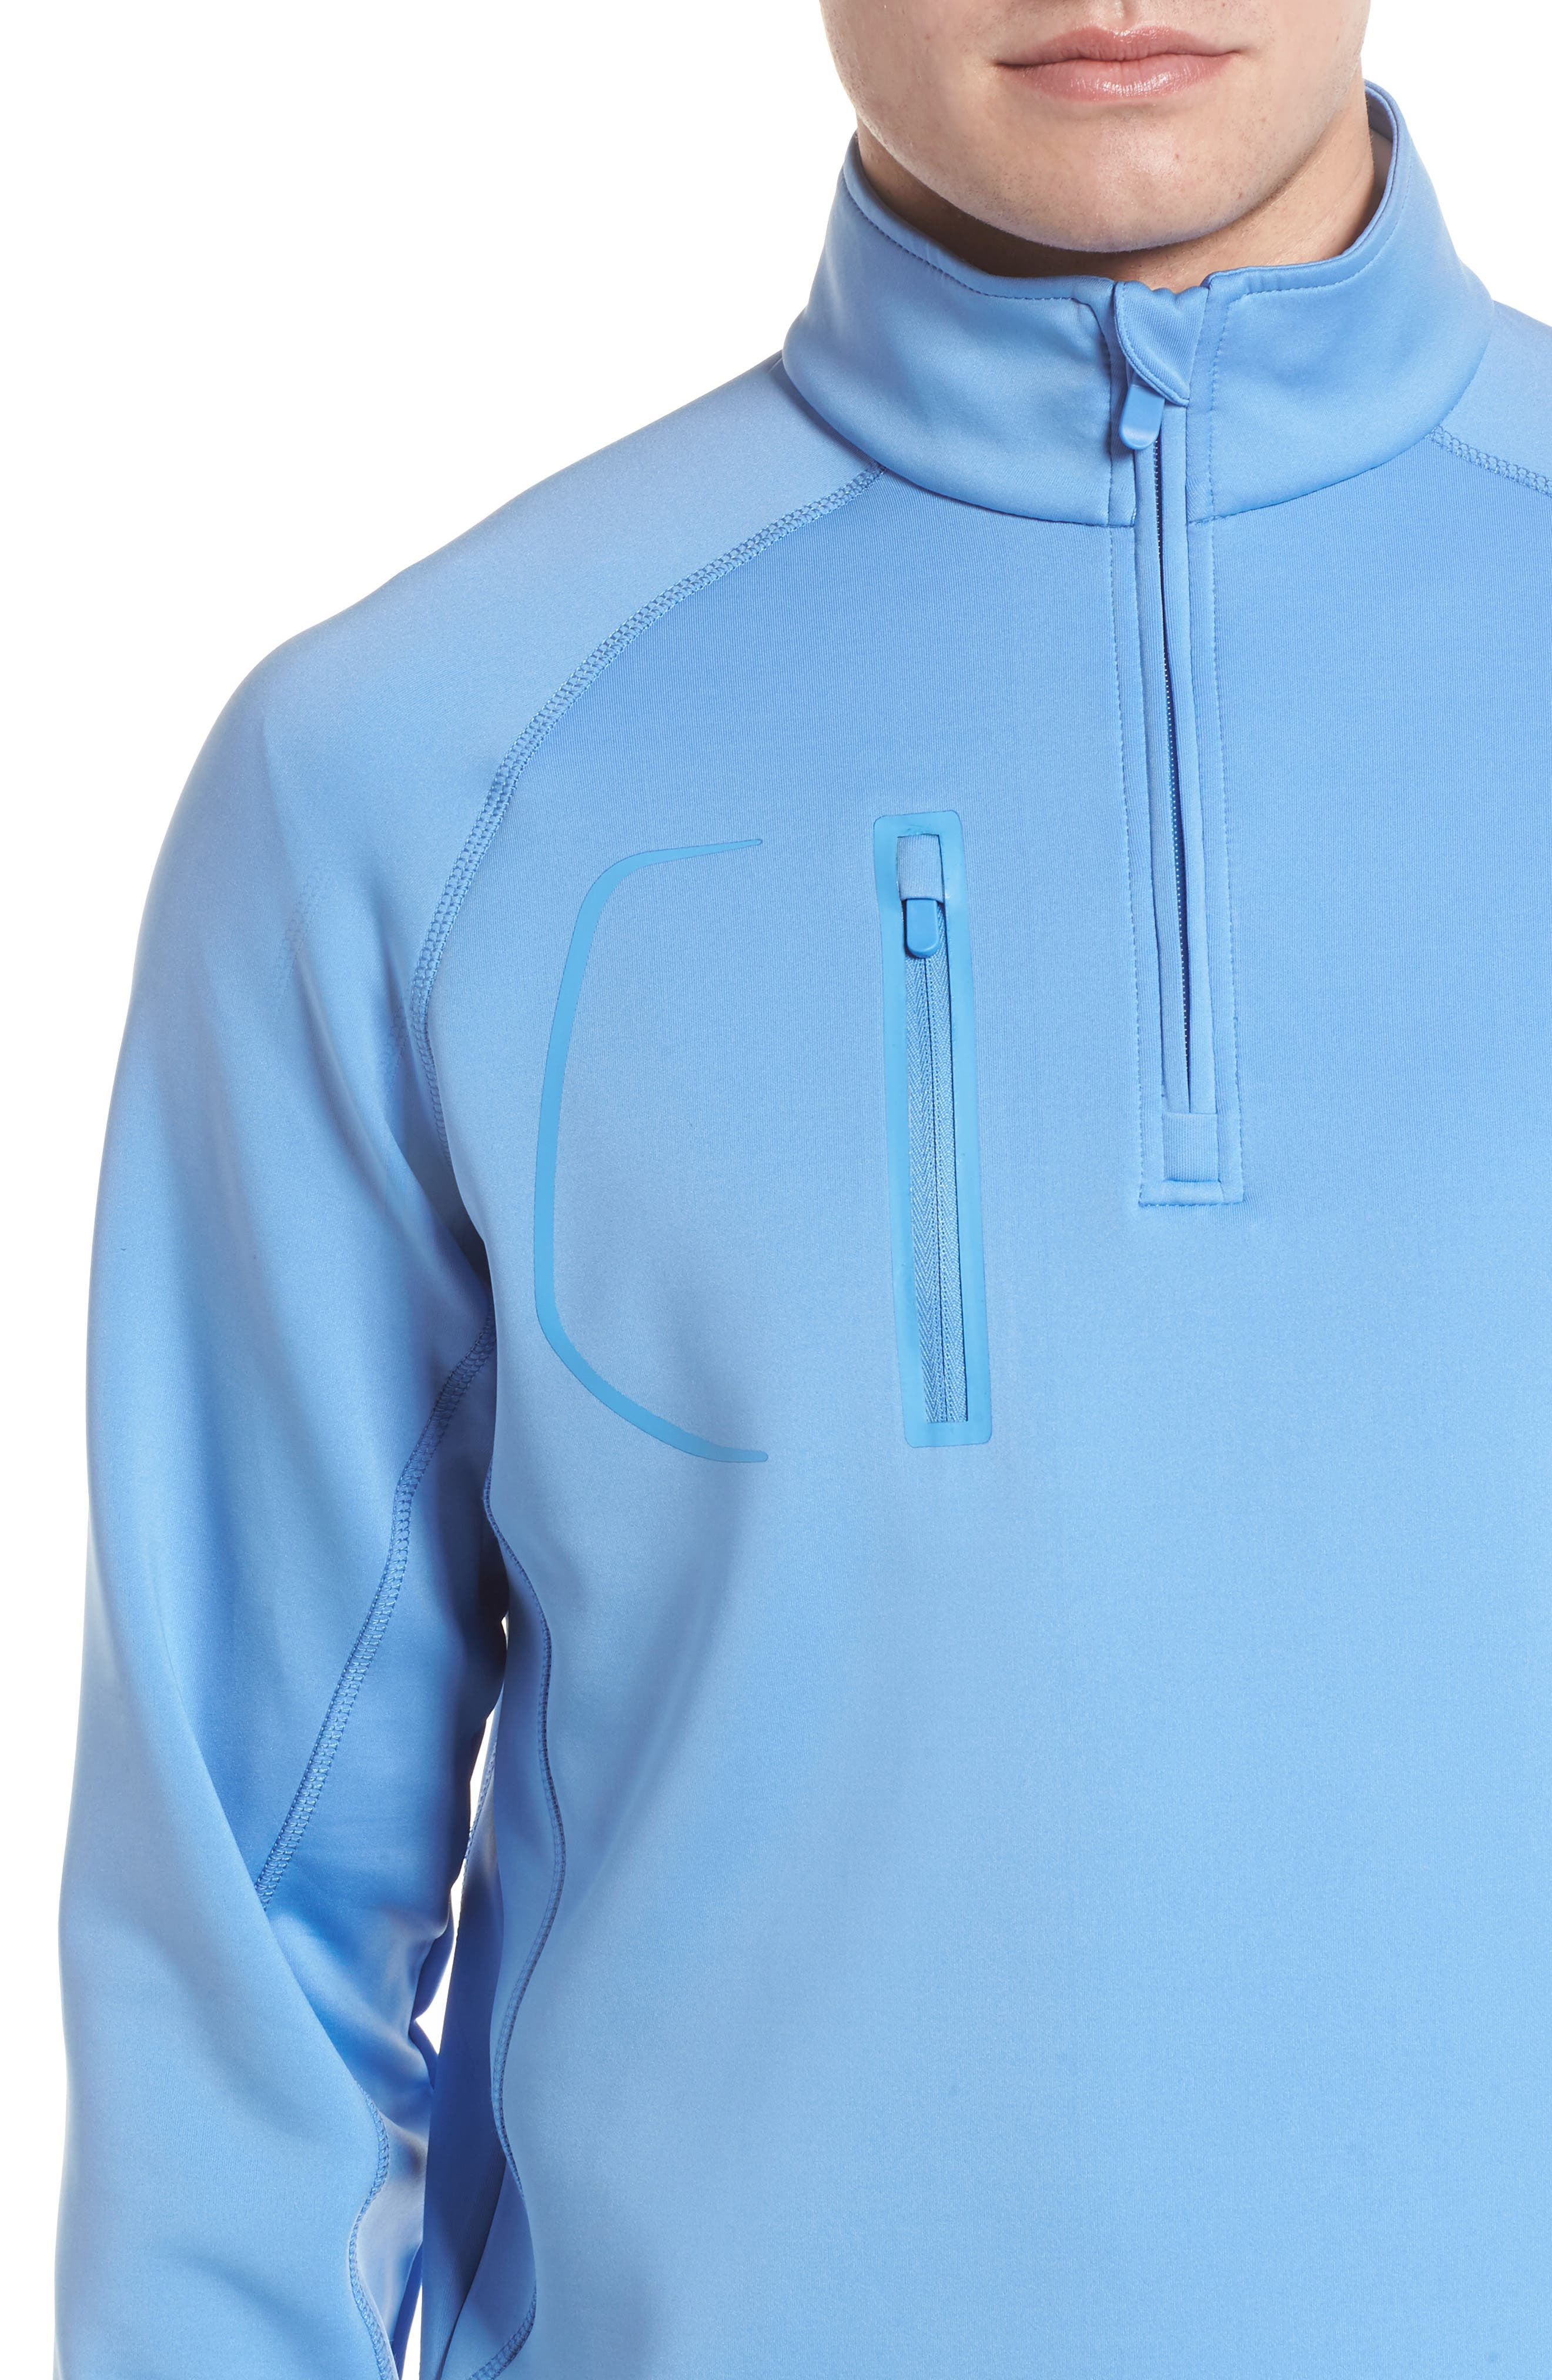 XH2O Crawford Stretch Quarter Zip Golf Pullover,                             Alternate thumbnail 40, color,